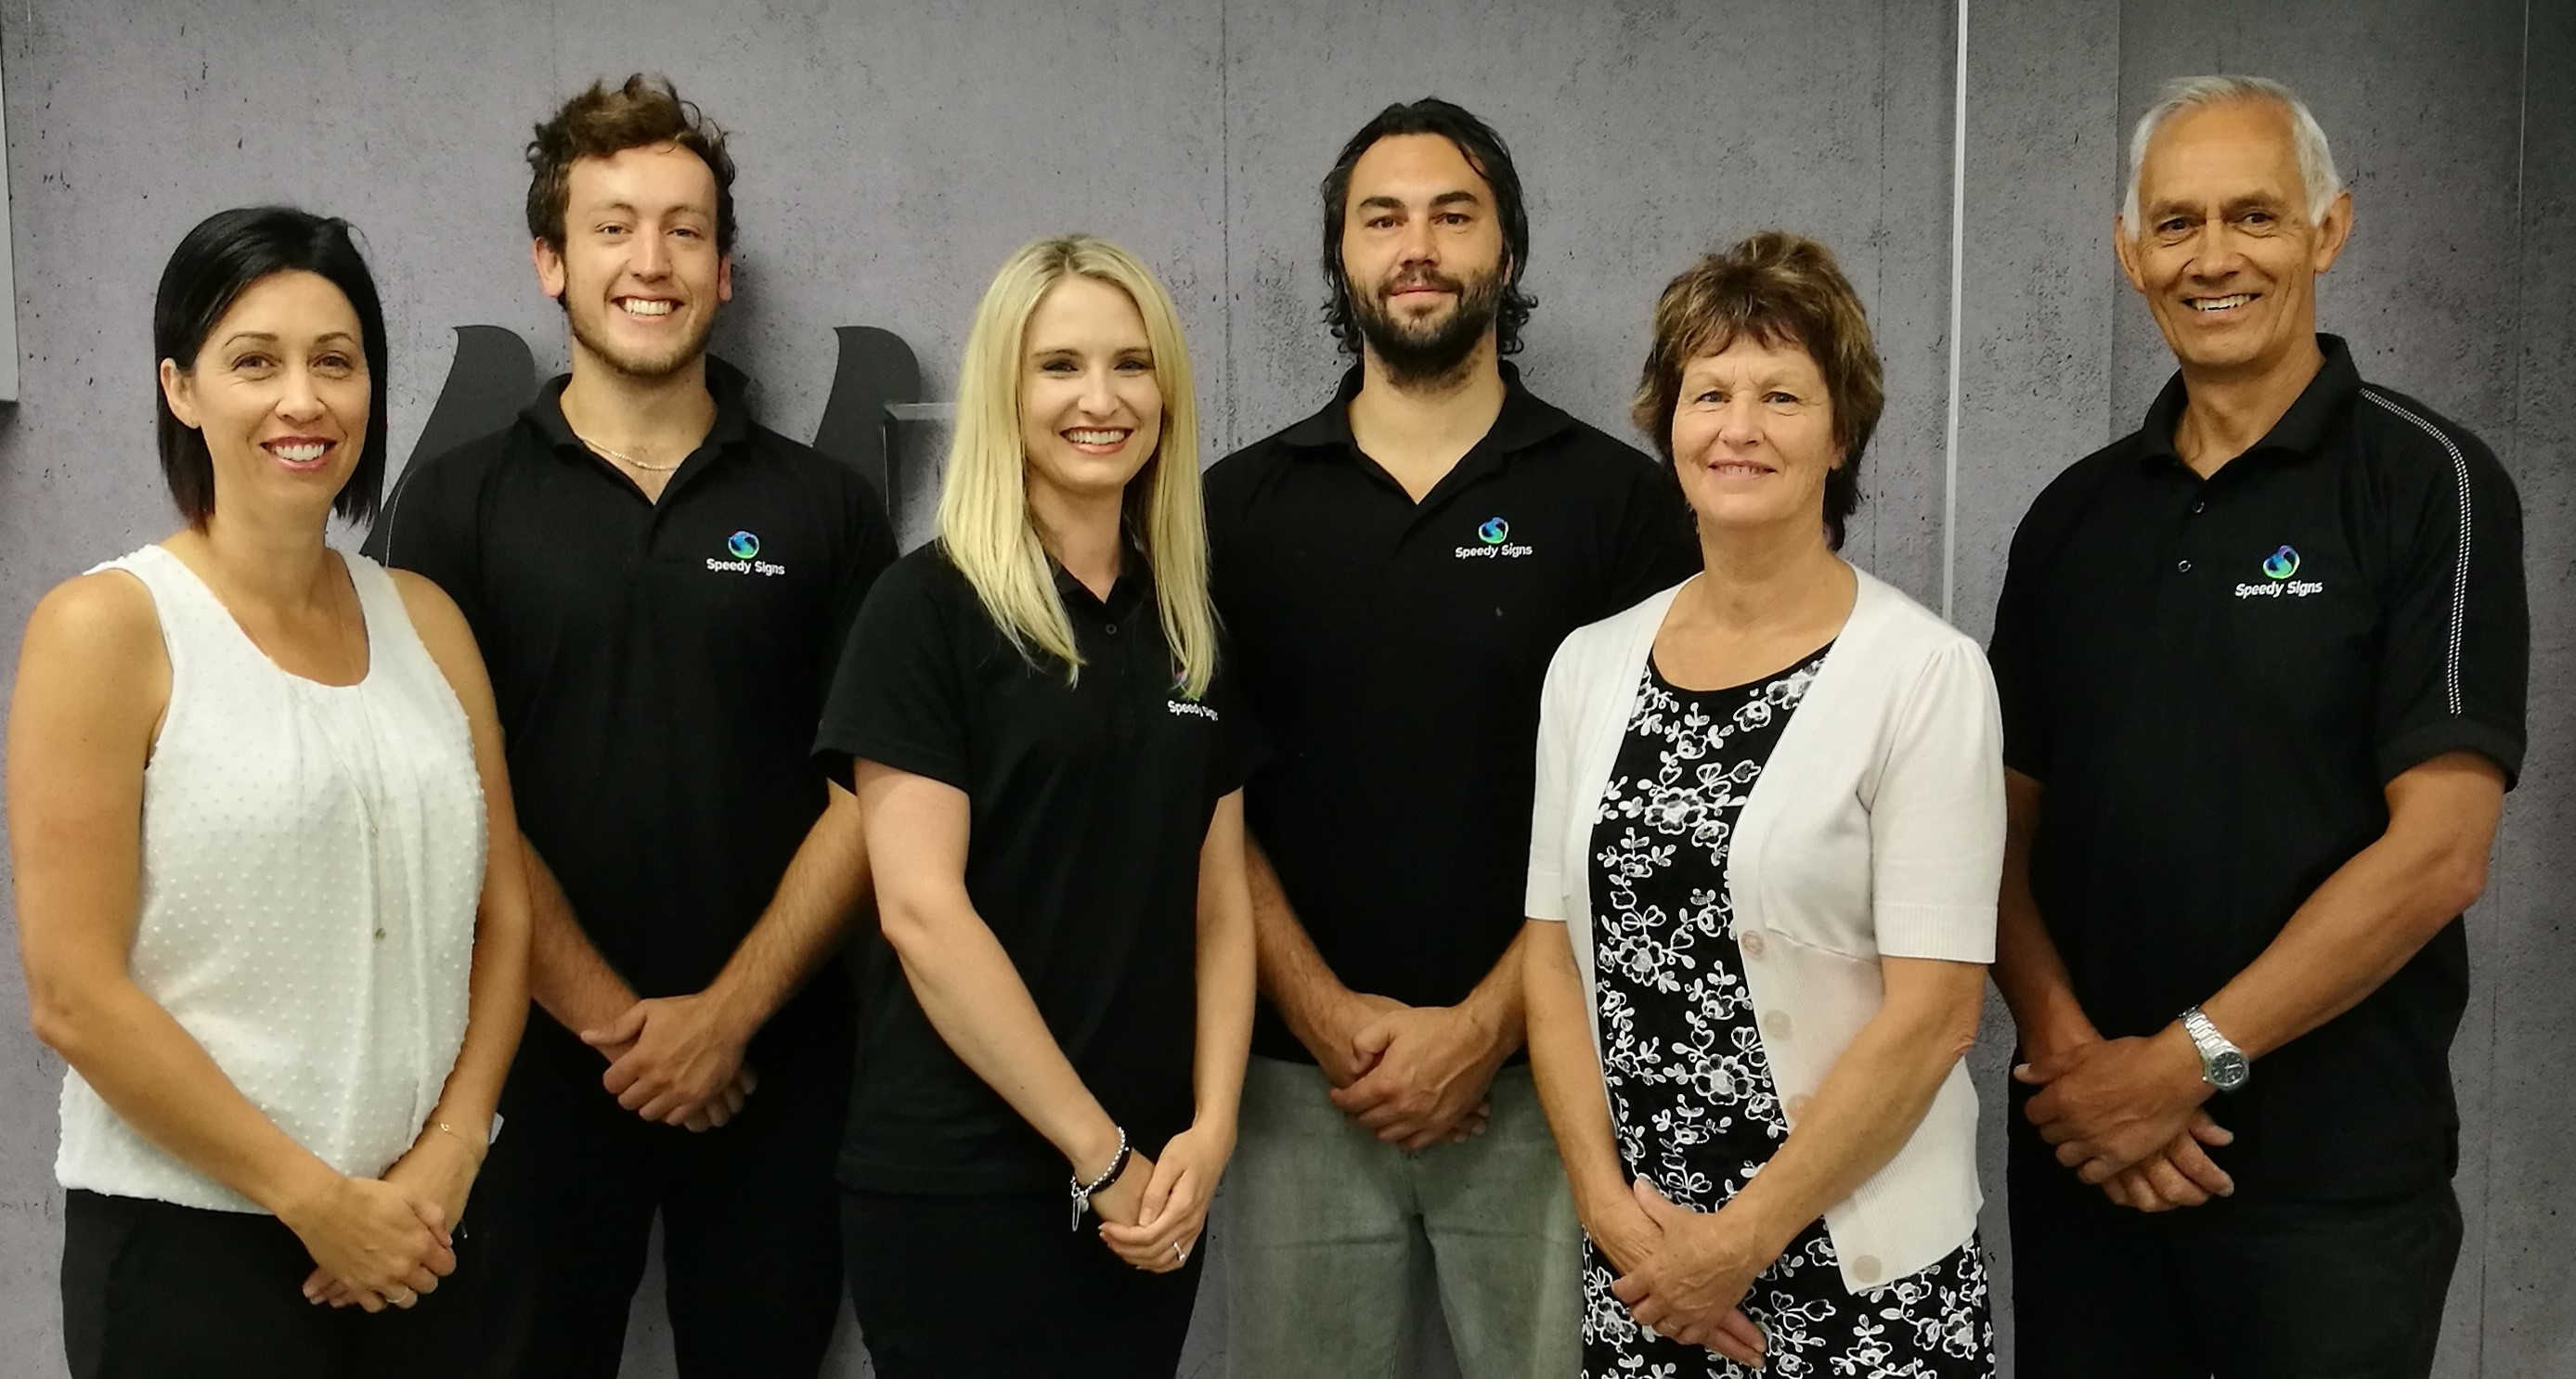 Business Services – Best Franchisee: Kevin and Sheryl Jones with their team (and family), Speedy Signs New Plymouth